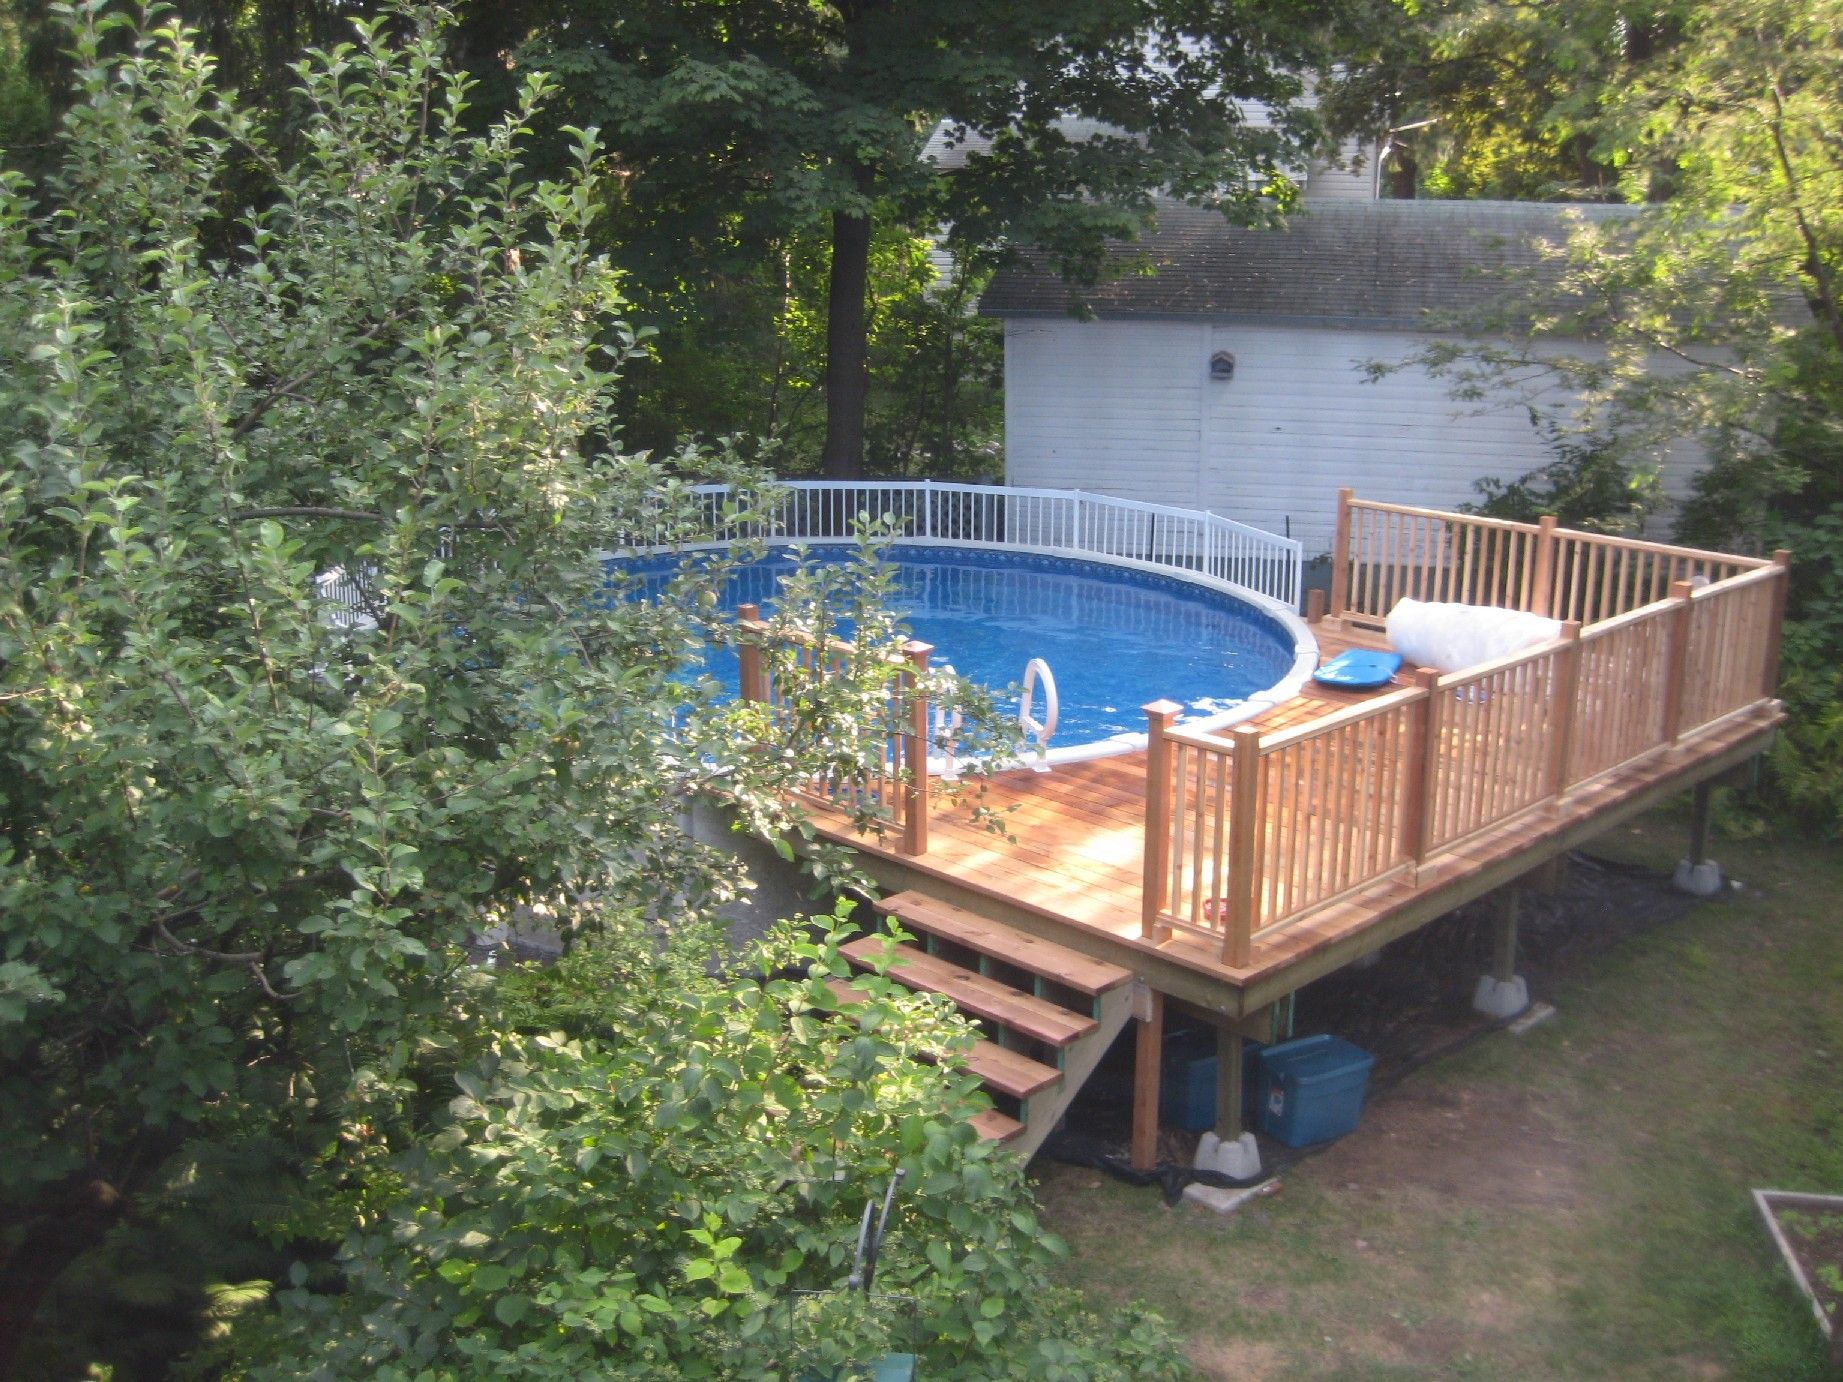 Above Ground Pool Decks Idea For Your Backyard Decor Round Above Ground Pool Decks Fro Small